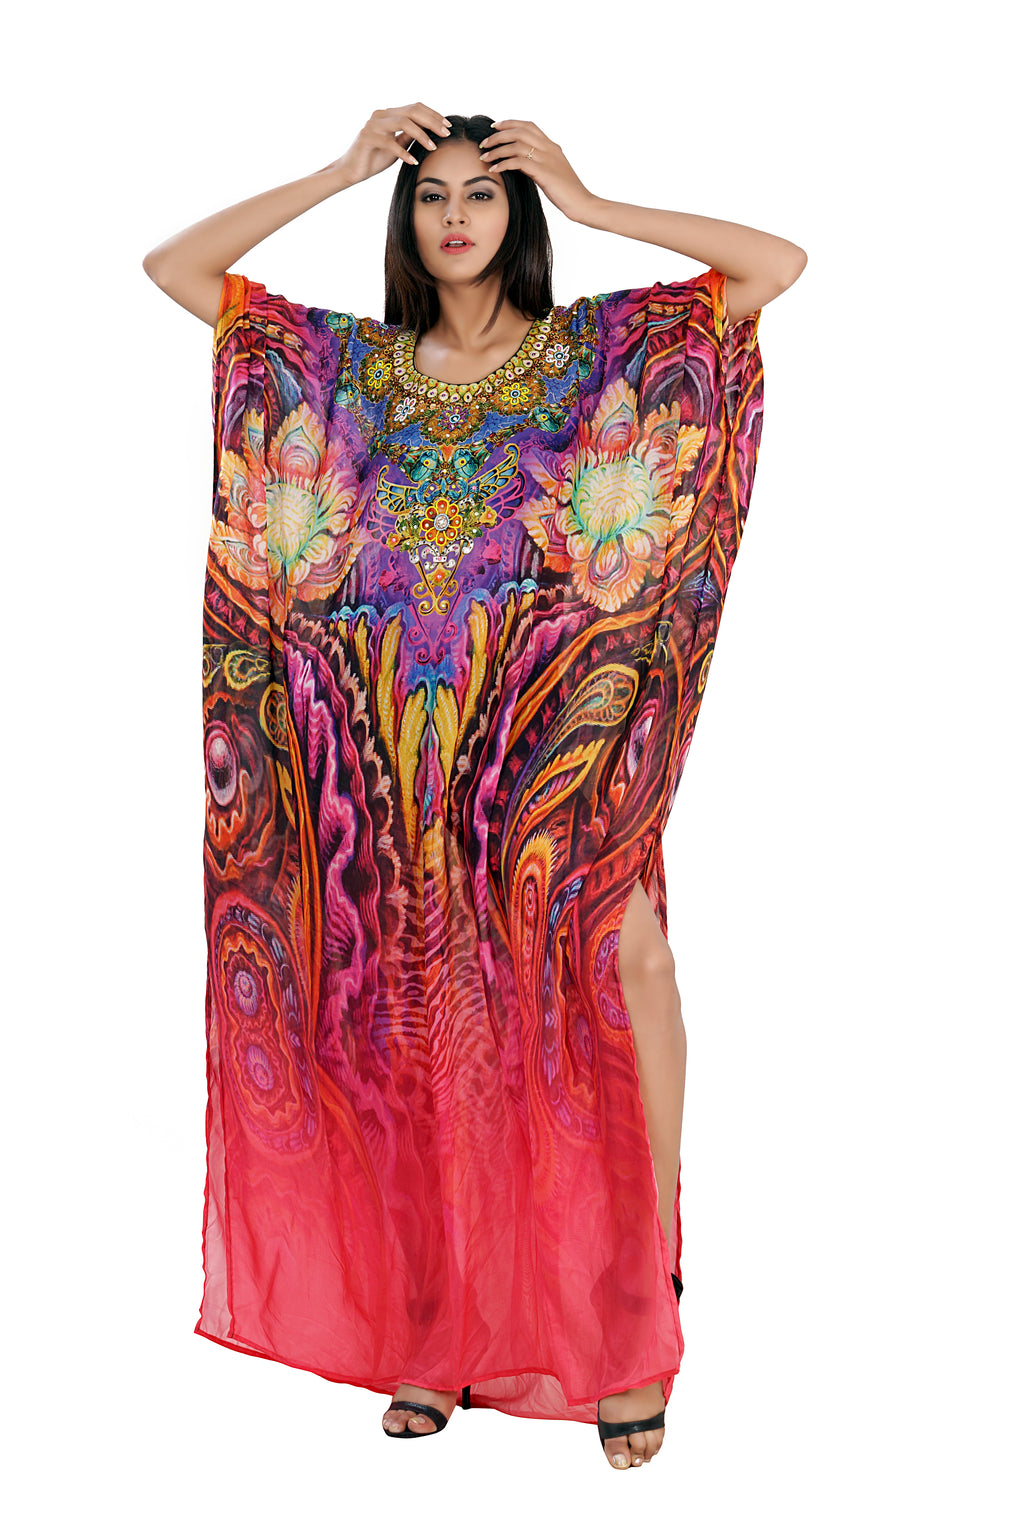 Silk resort wear Classic Feather Print on Resort wear Kaftan evening beach coverup to swathe on party time - Silk kaftan